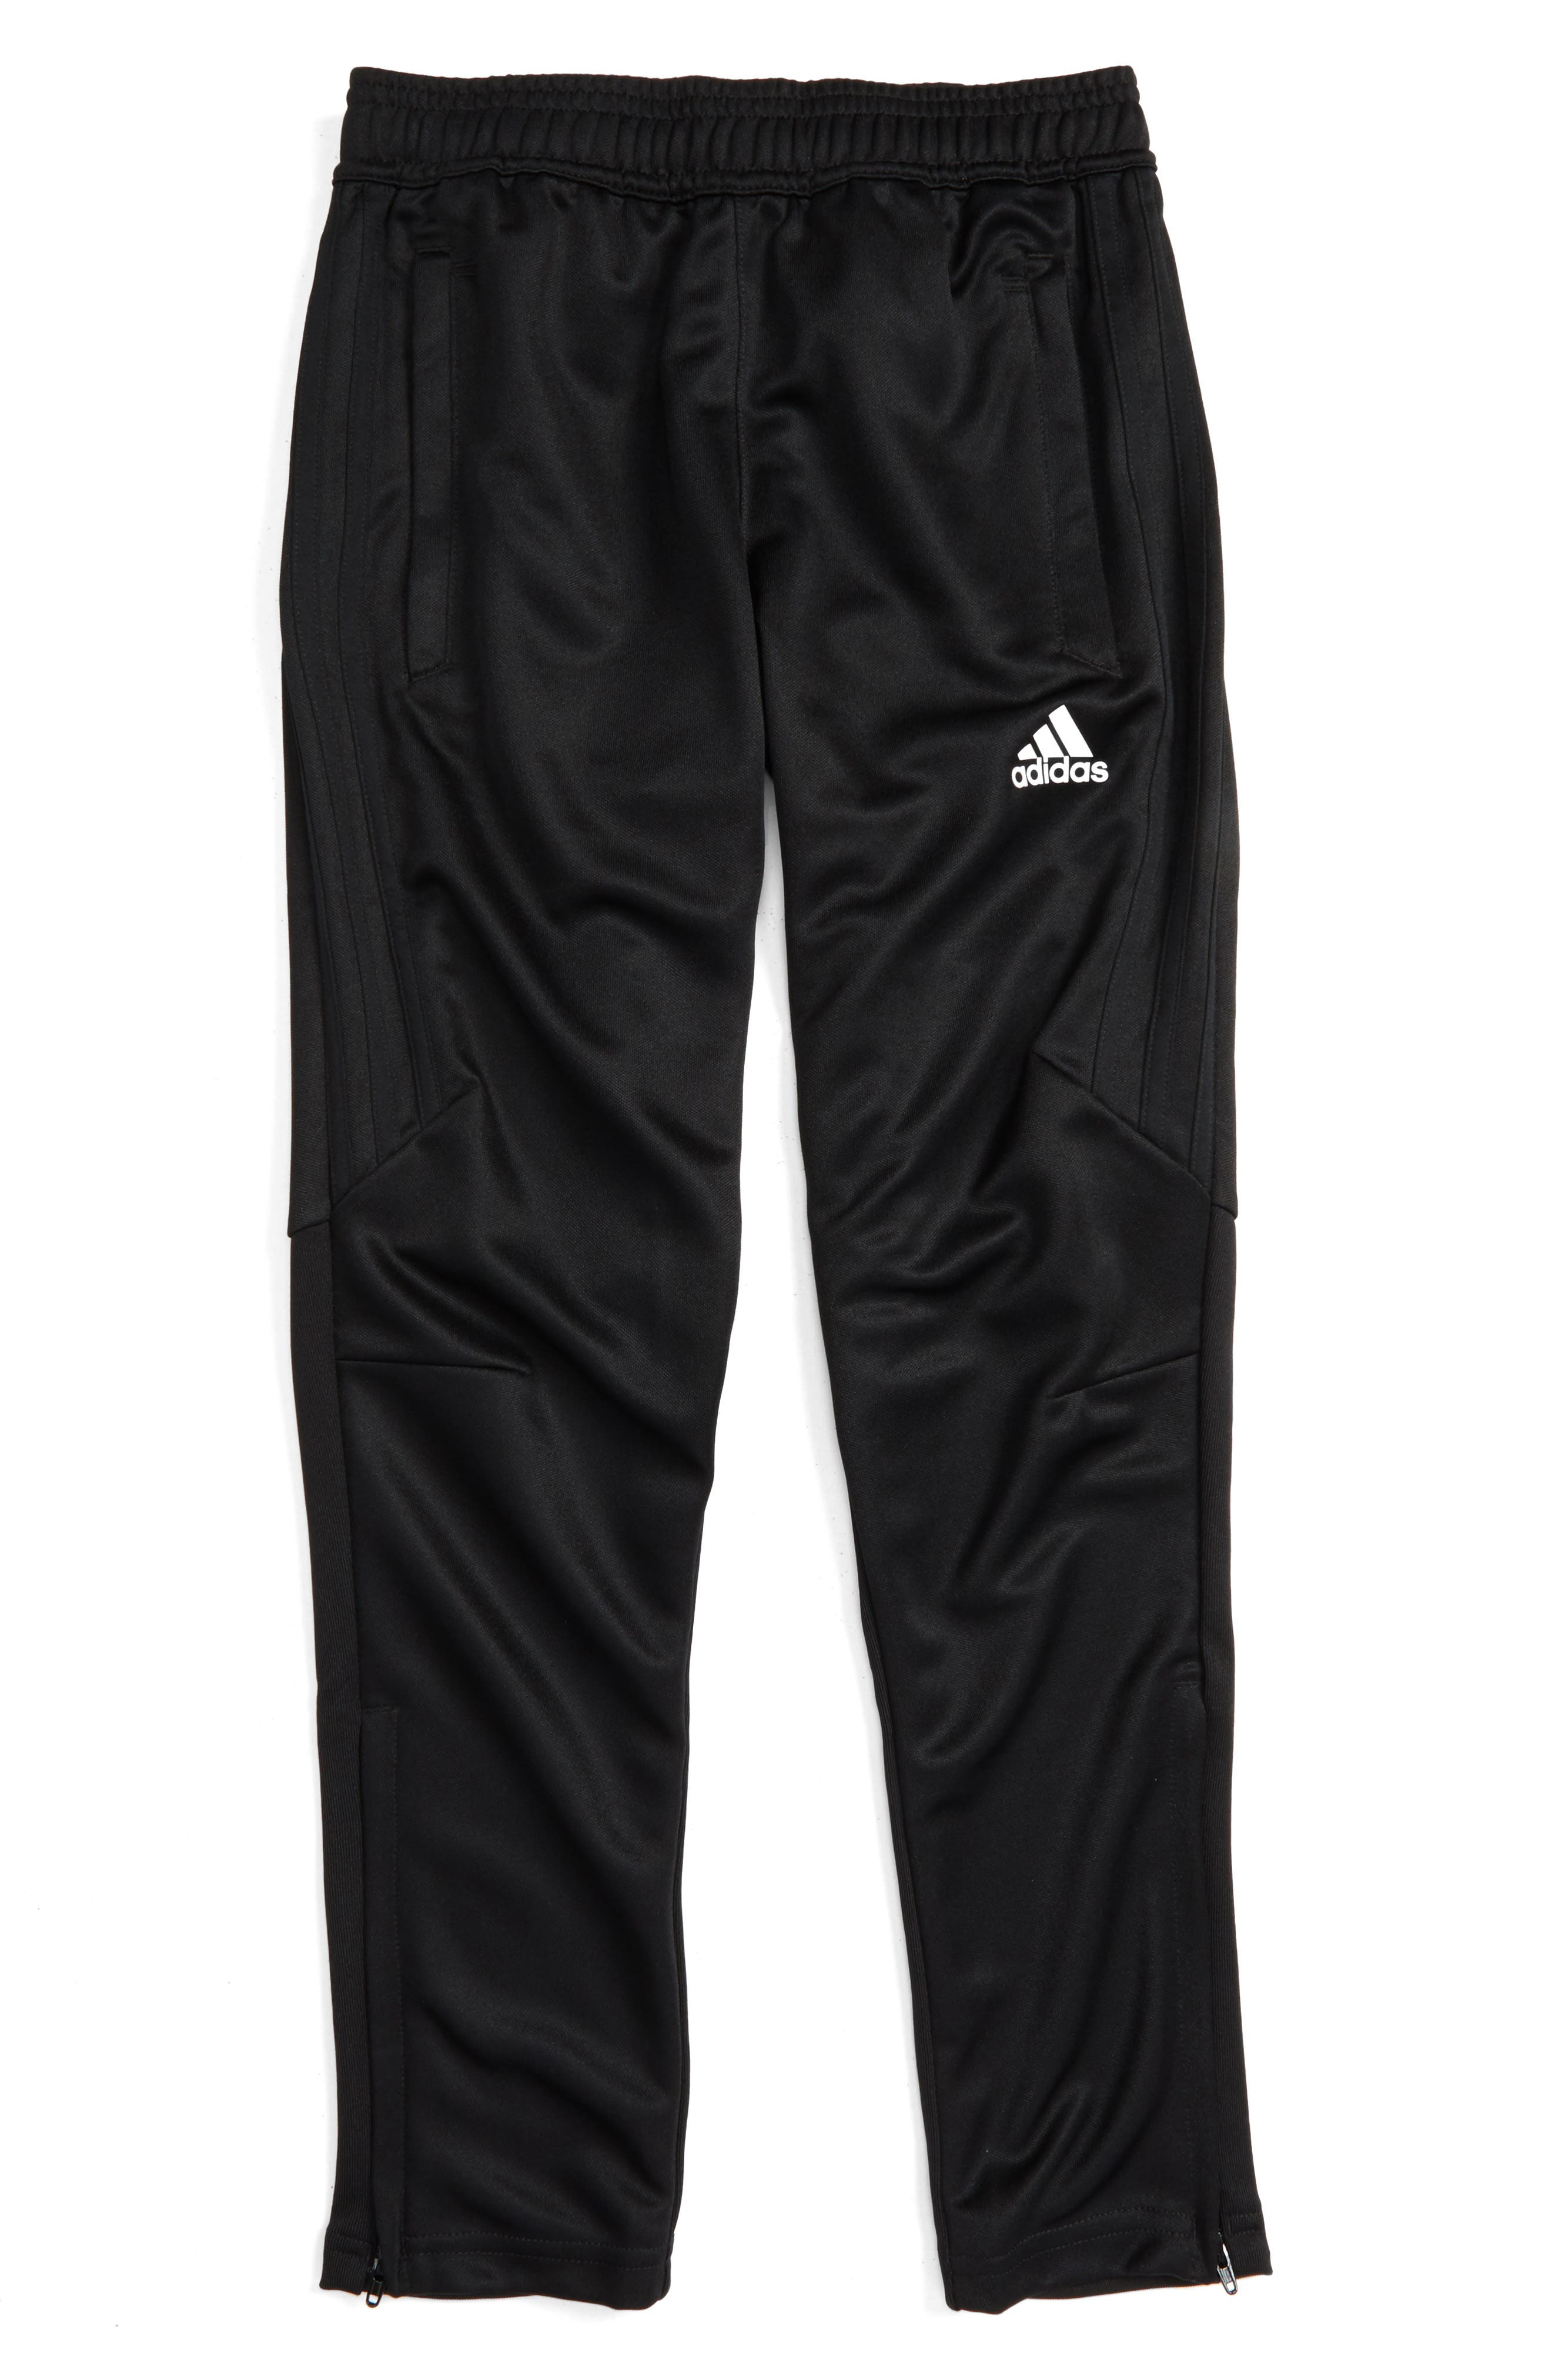 Alternate Image 1 Selected - adidas Originals Tiro 17 Training Pants (Little Boys & Big Boys)